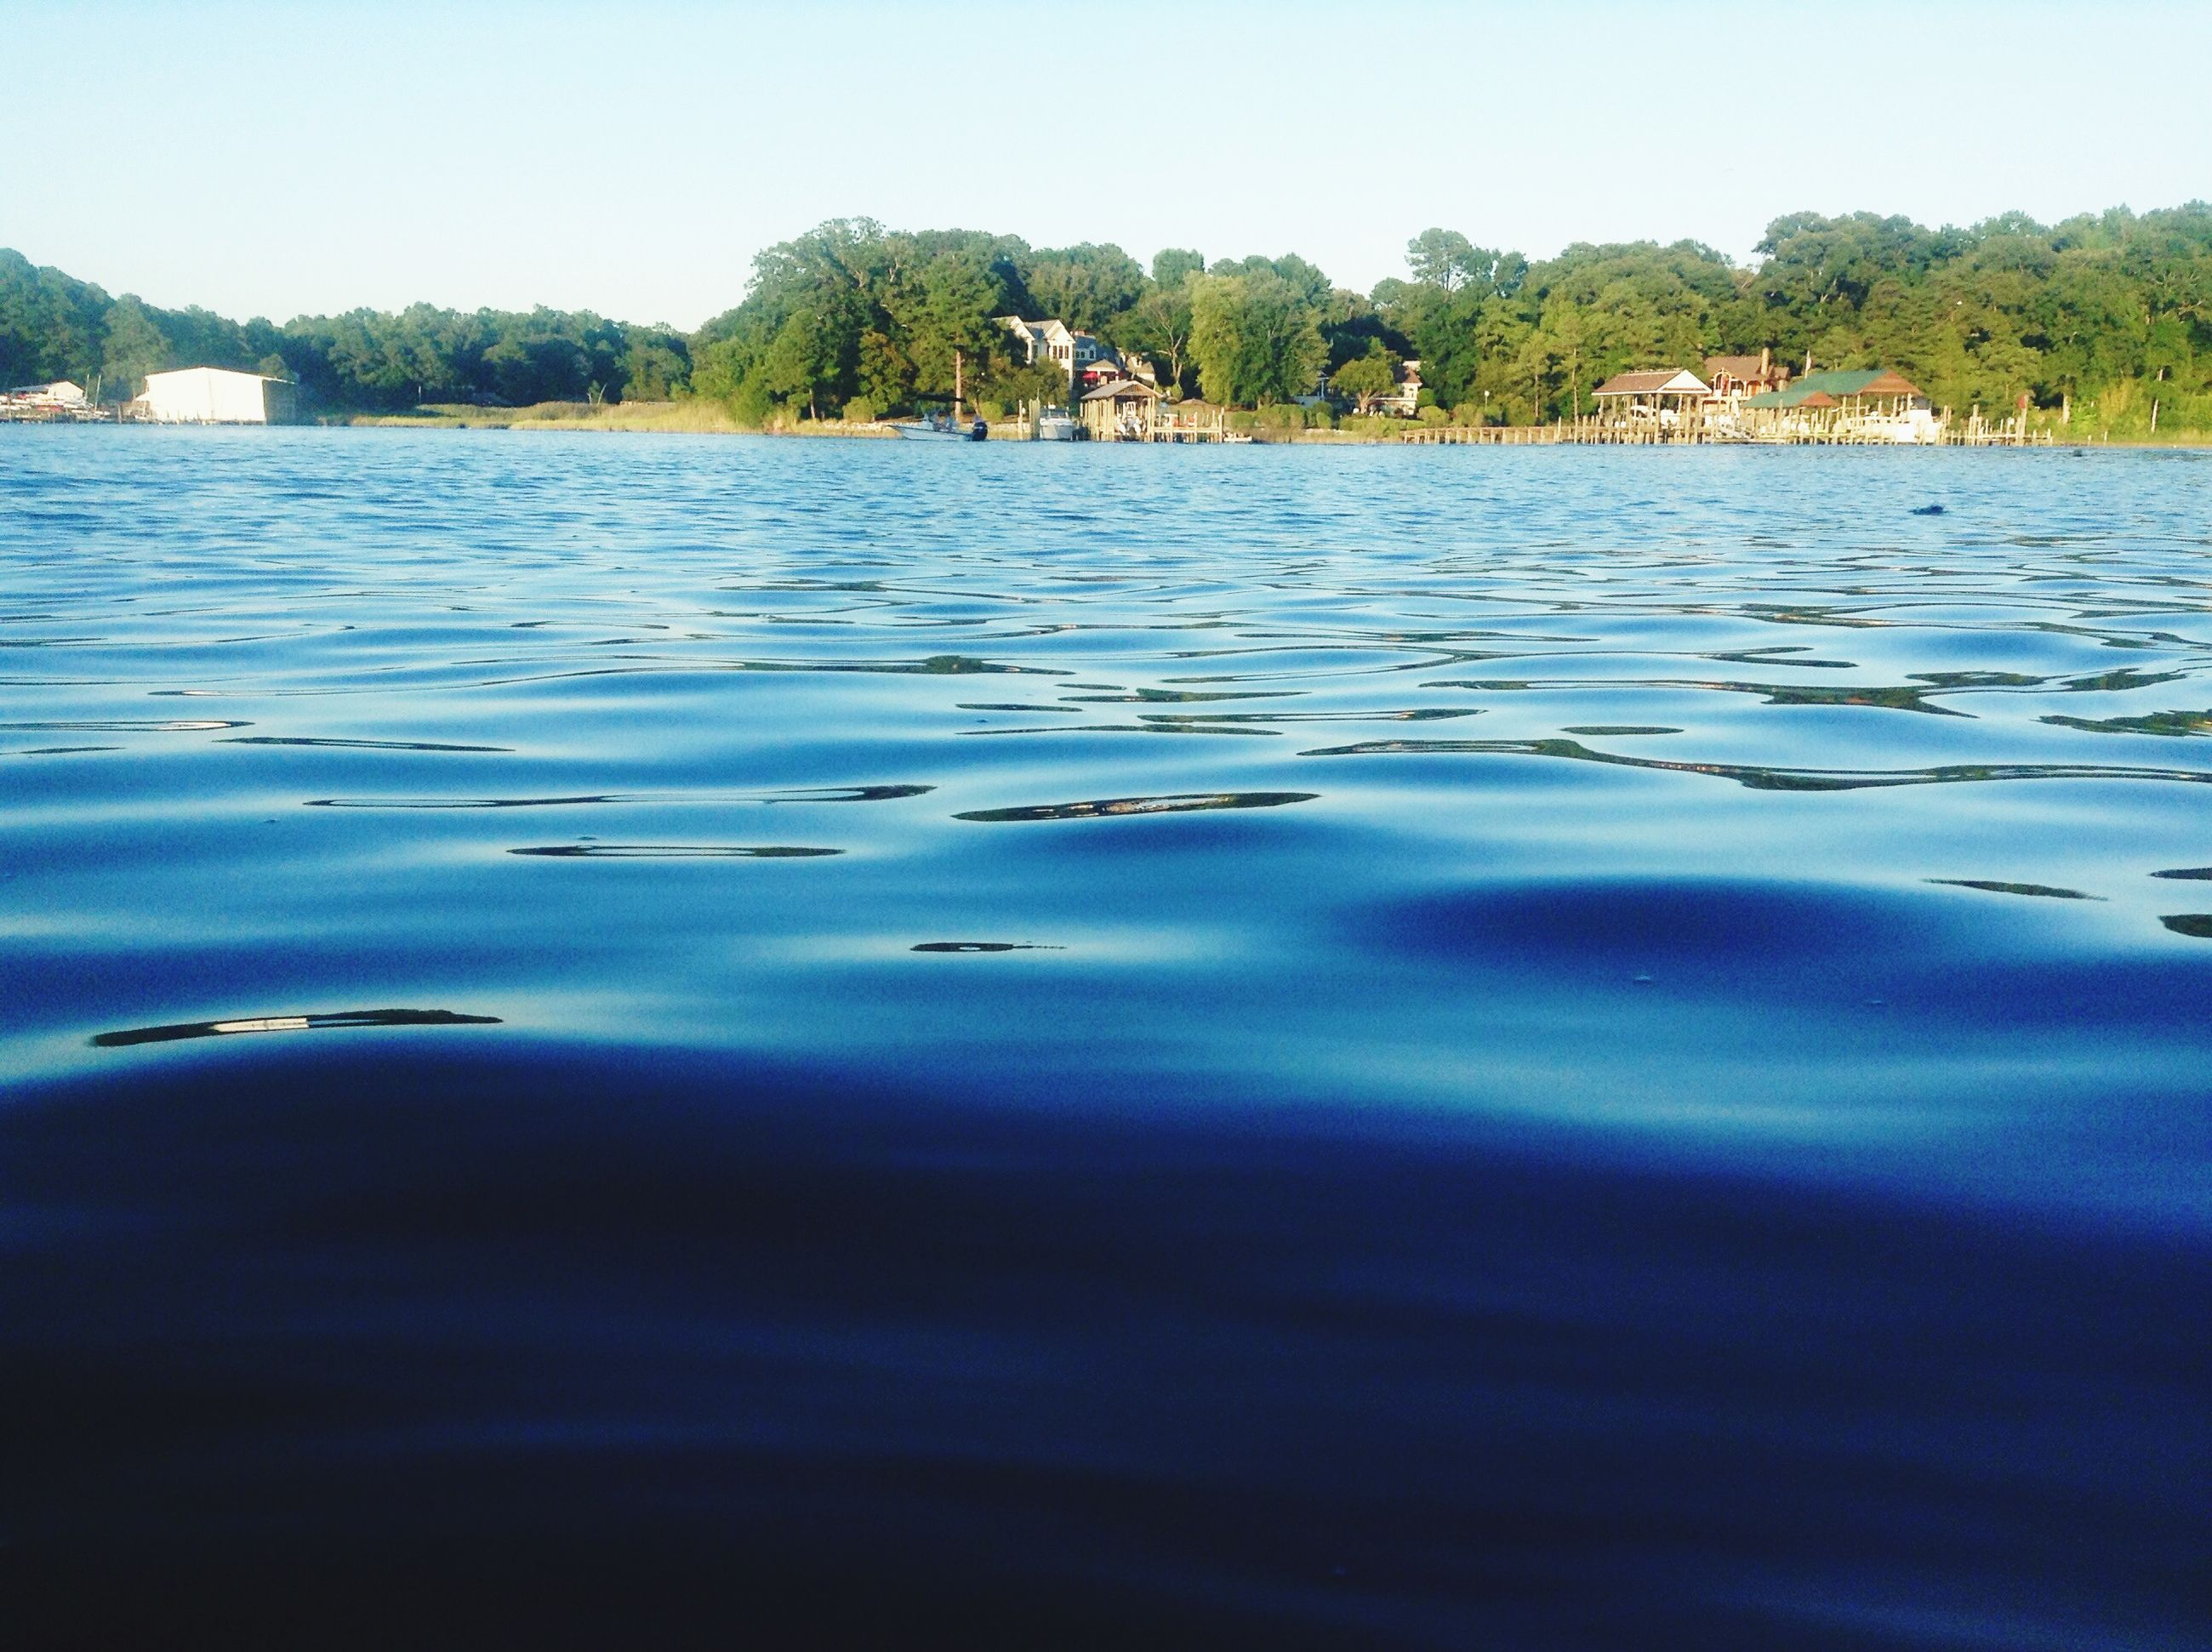 water, reflection, lake, waterfront, tranquil scene, tranquility, scenics, blue, beauty in nature, clear sky, rippled, tree, nature, idyllic, calm, no people, outdoors, day, sky, water surface